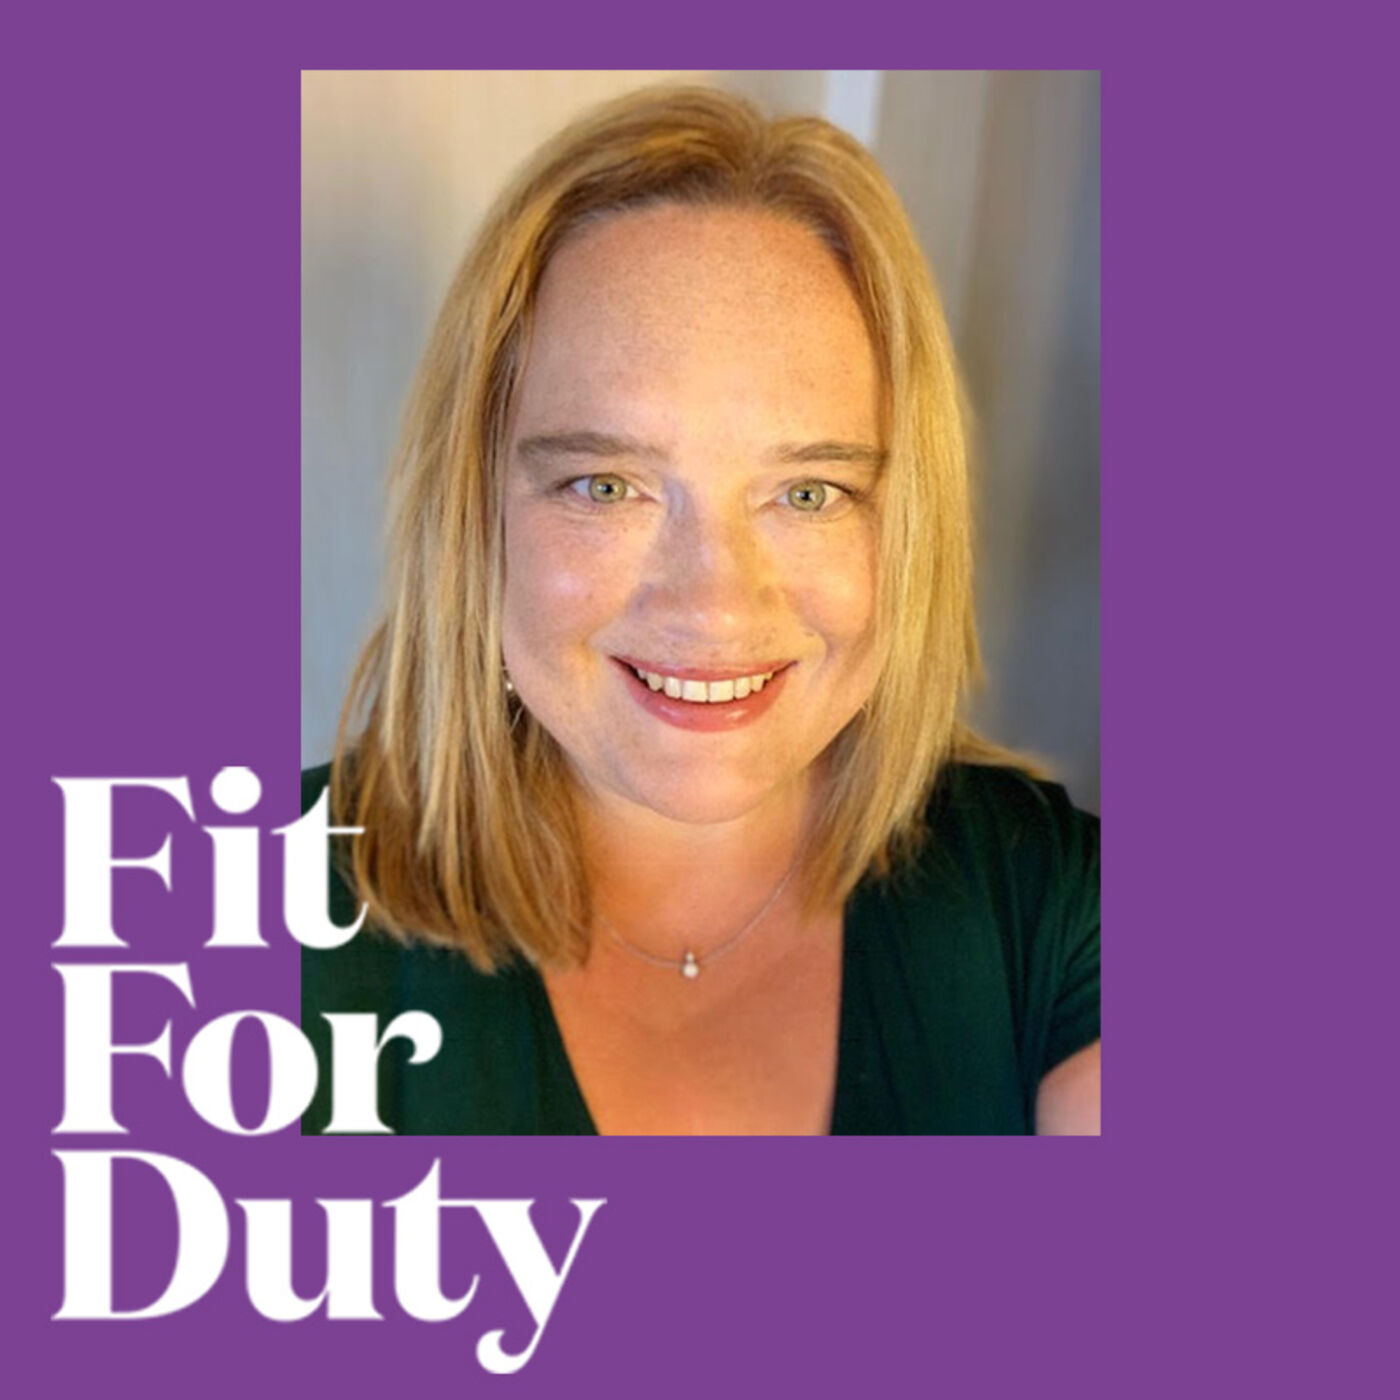 Fit For Duty 5 - Every cloud... Will the pandemic drive healthier work practices and adoption of health care tech?